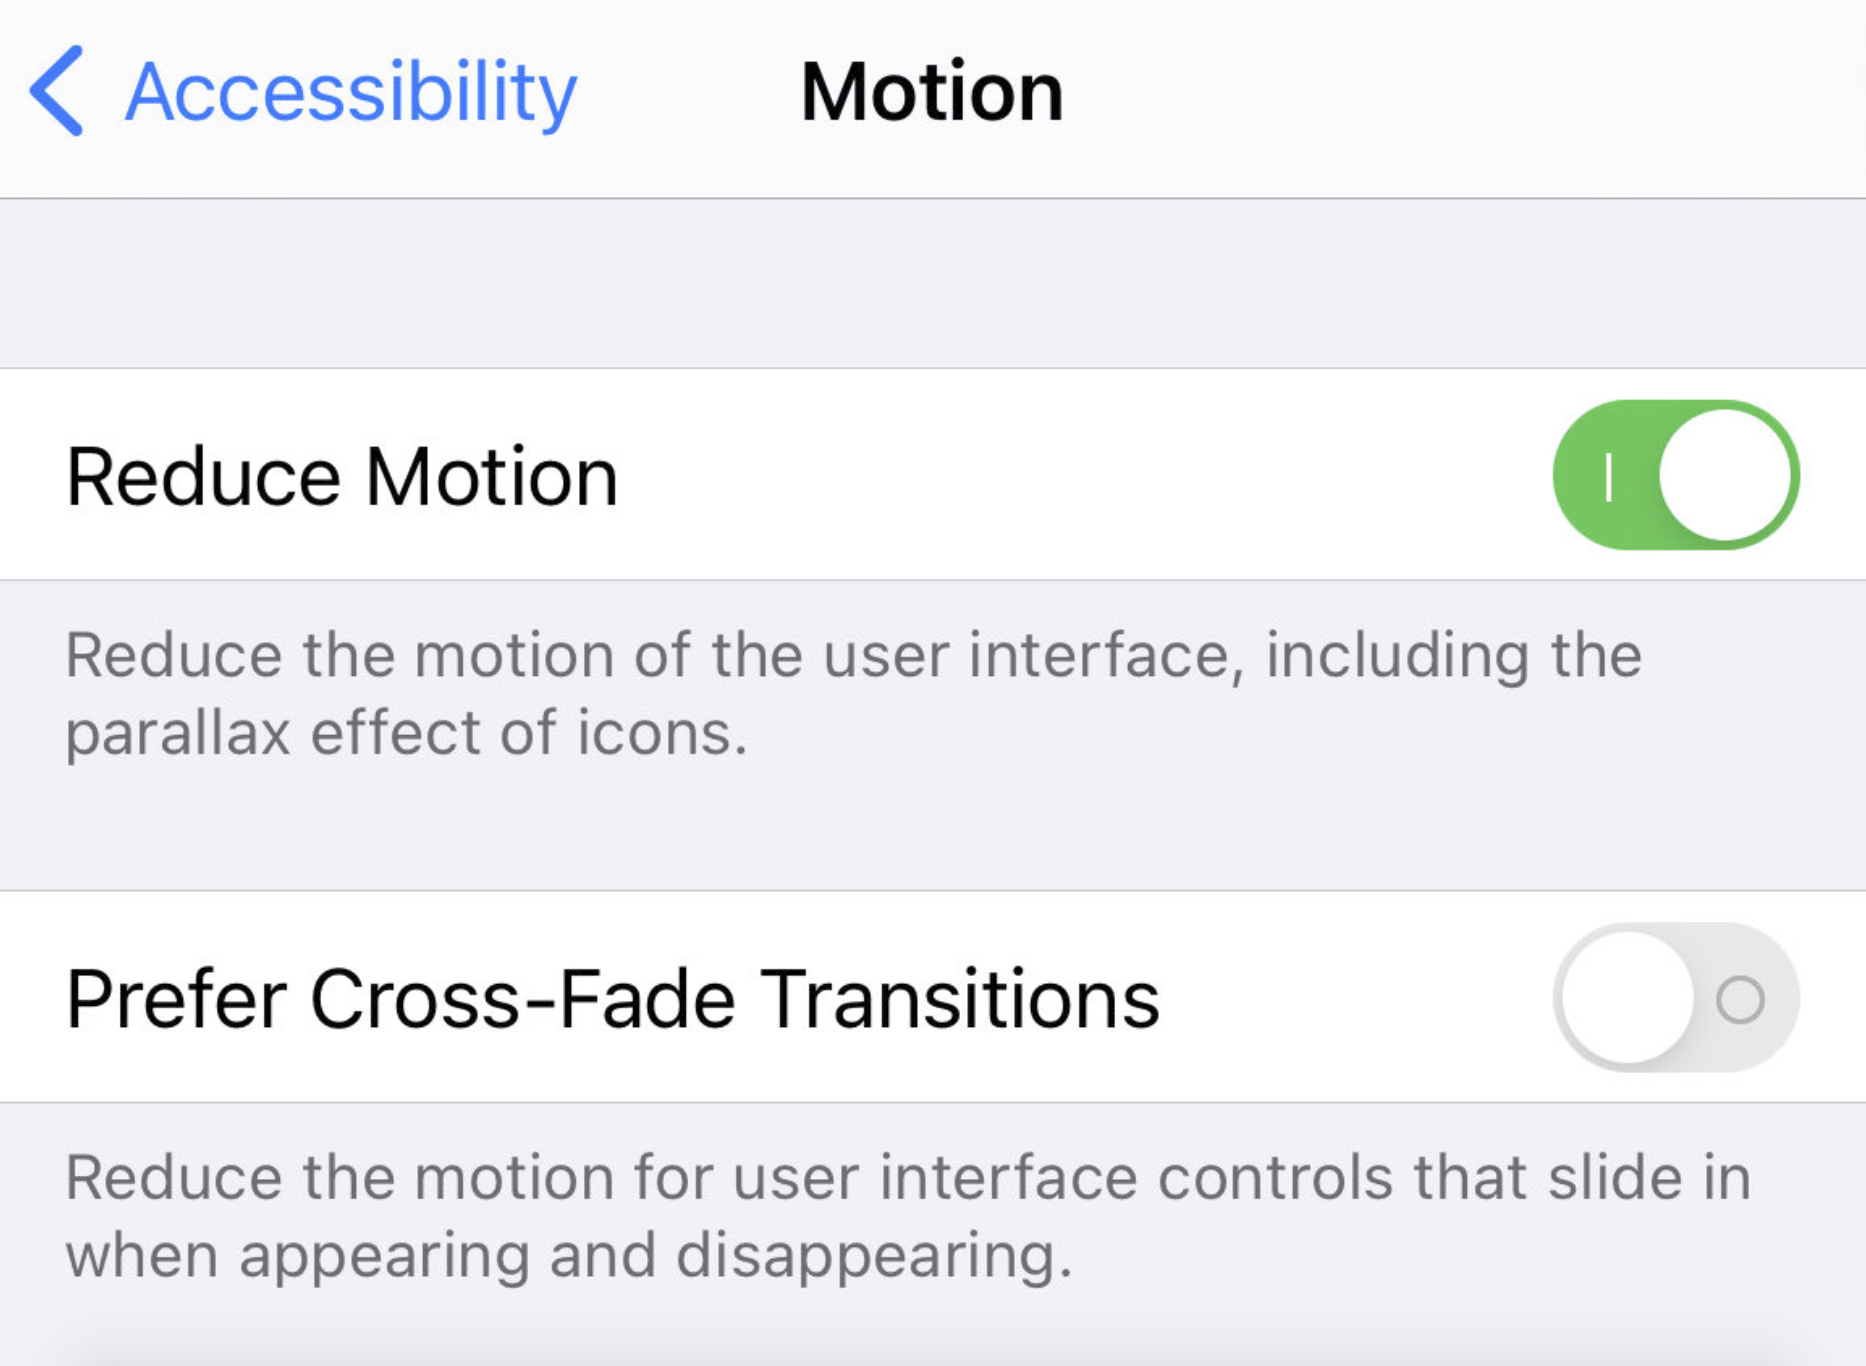 Disable Prefer Cross-Fade Transitions function on iPhone/iPad